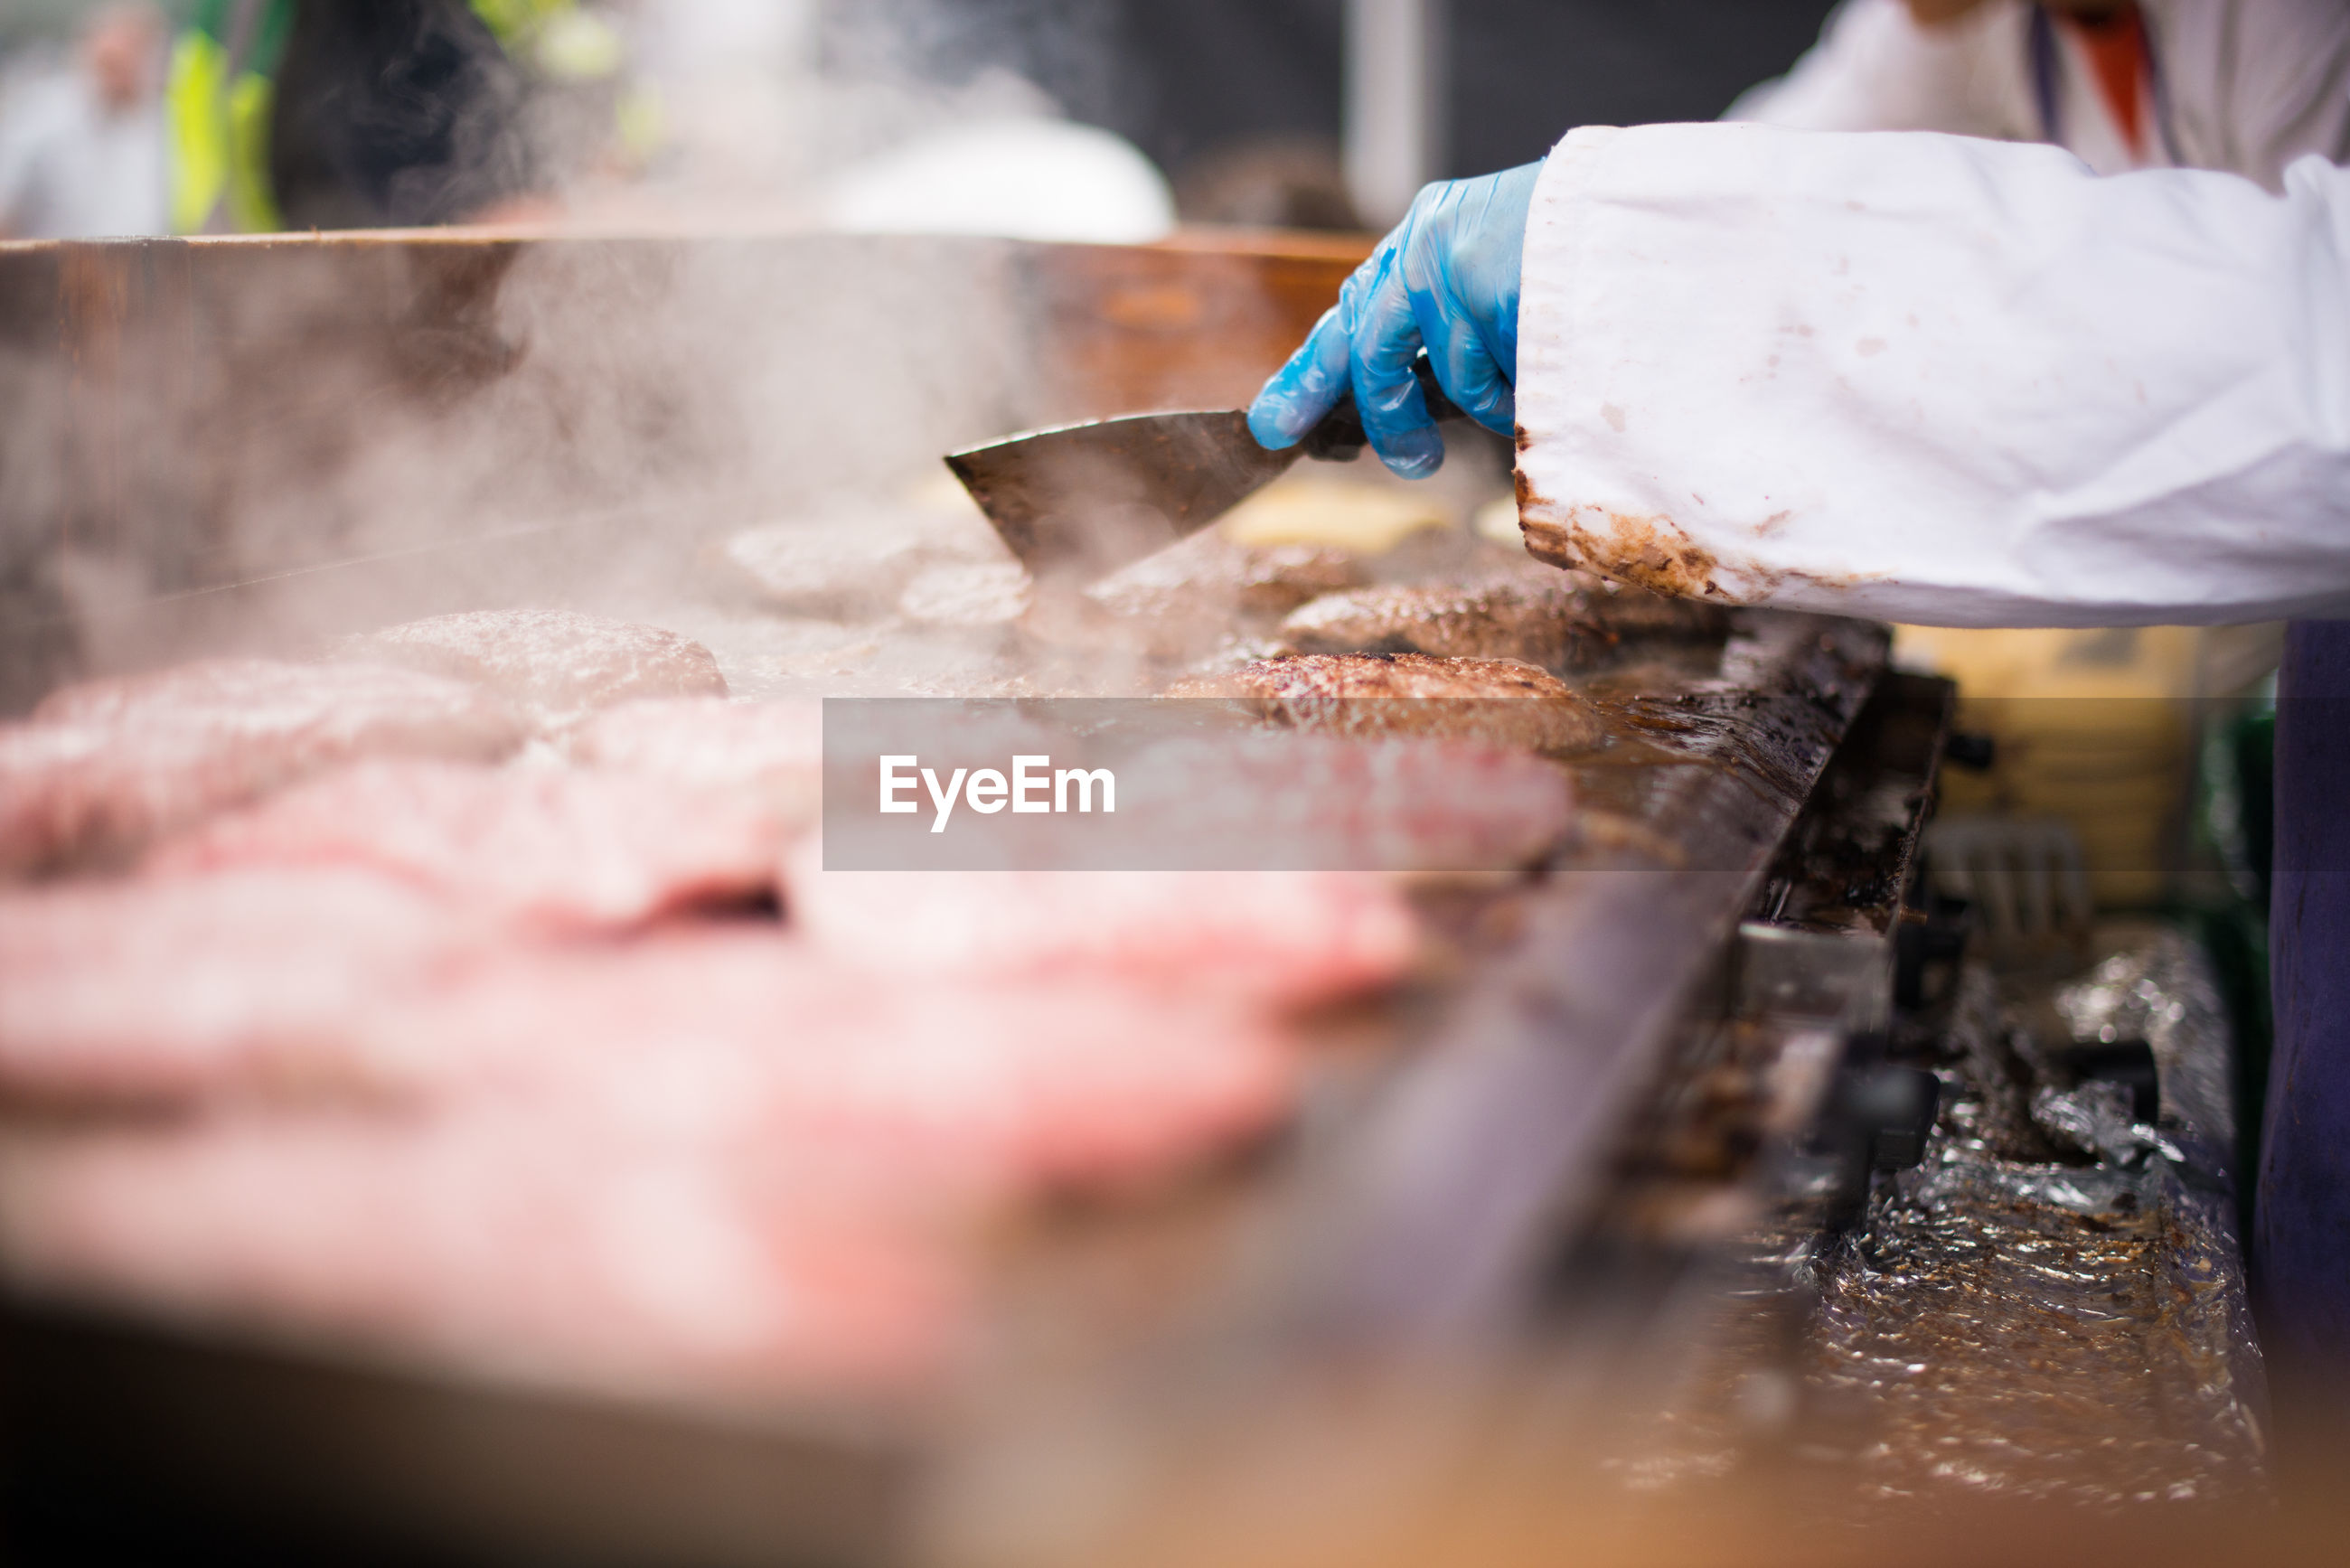 Midsection of person preparing burger at street market